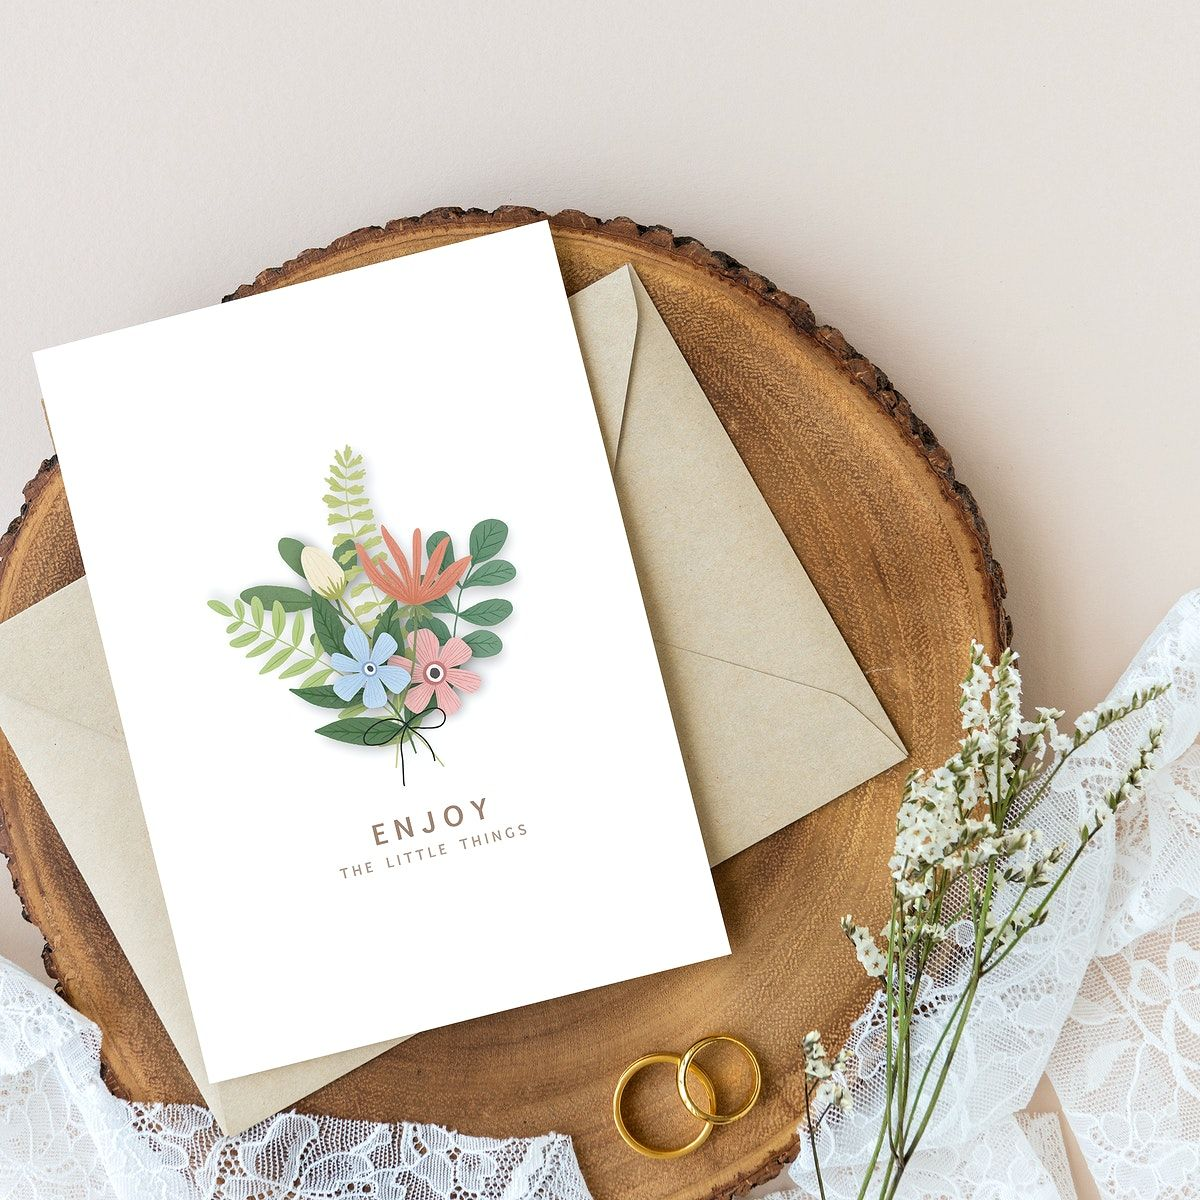 Download Premium Psd Of Blank Floral Card Template Mockup On A Wooden Floral Cards Card Template Card Design